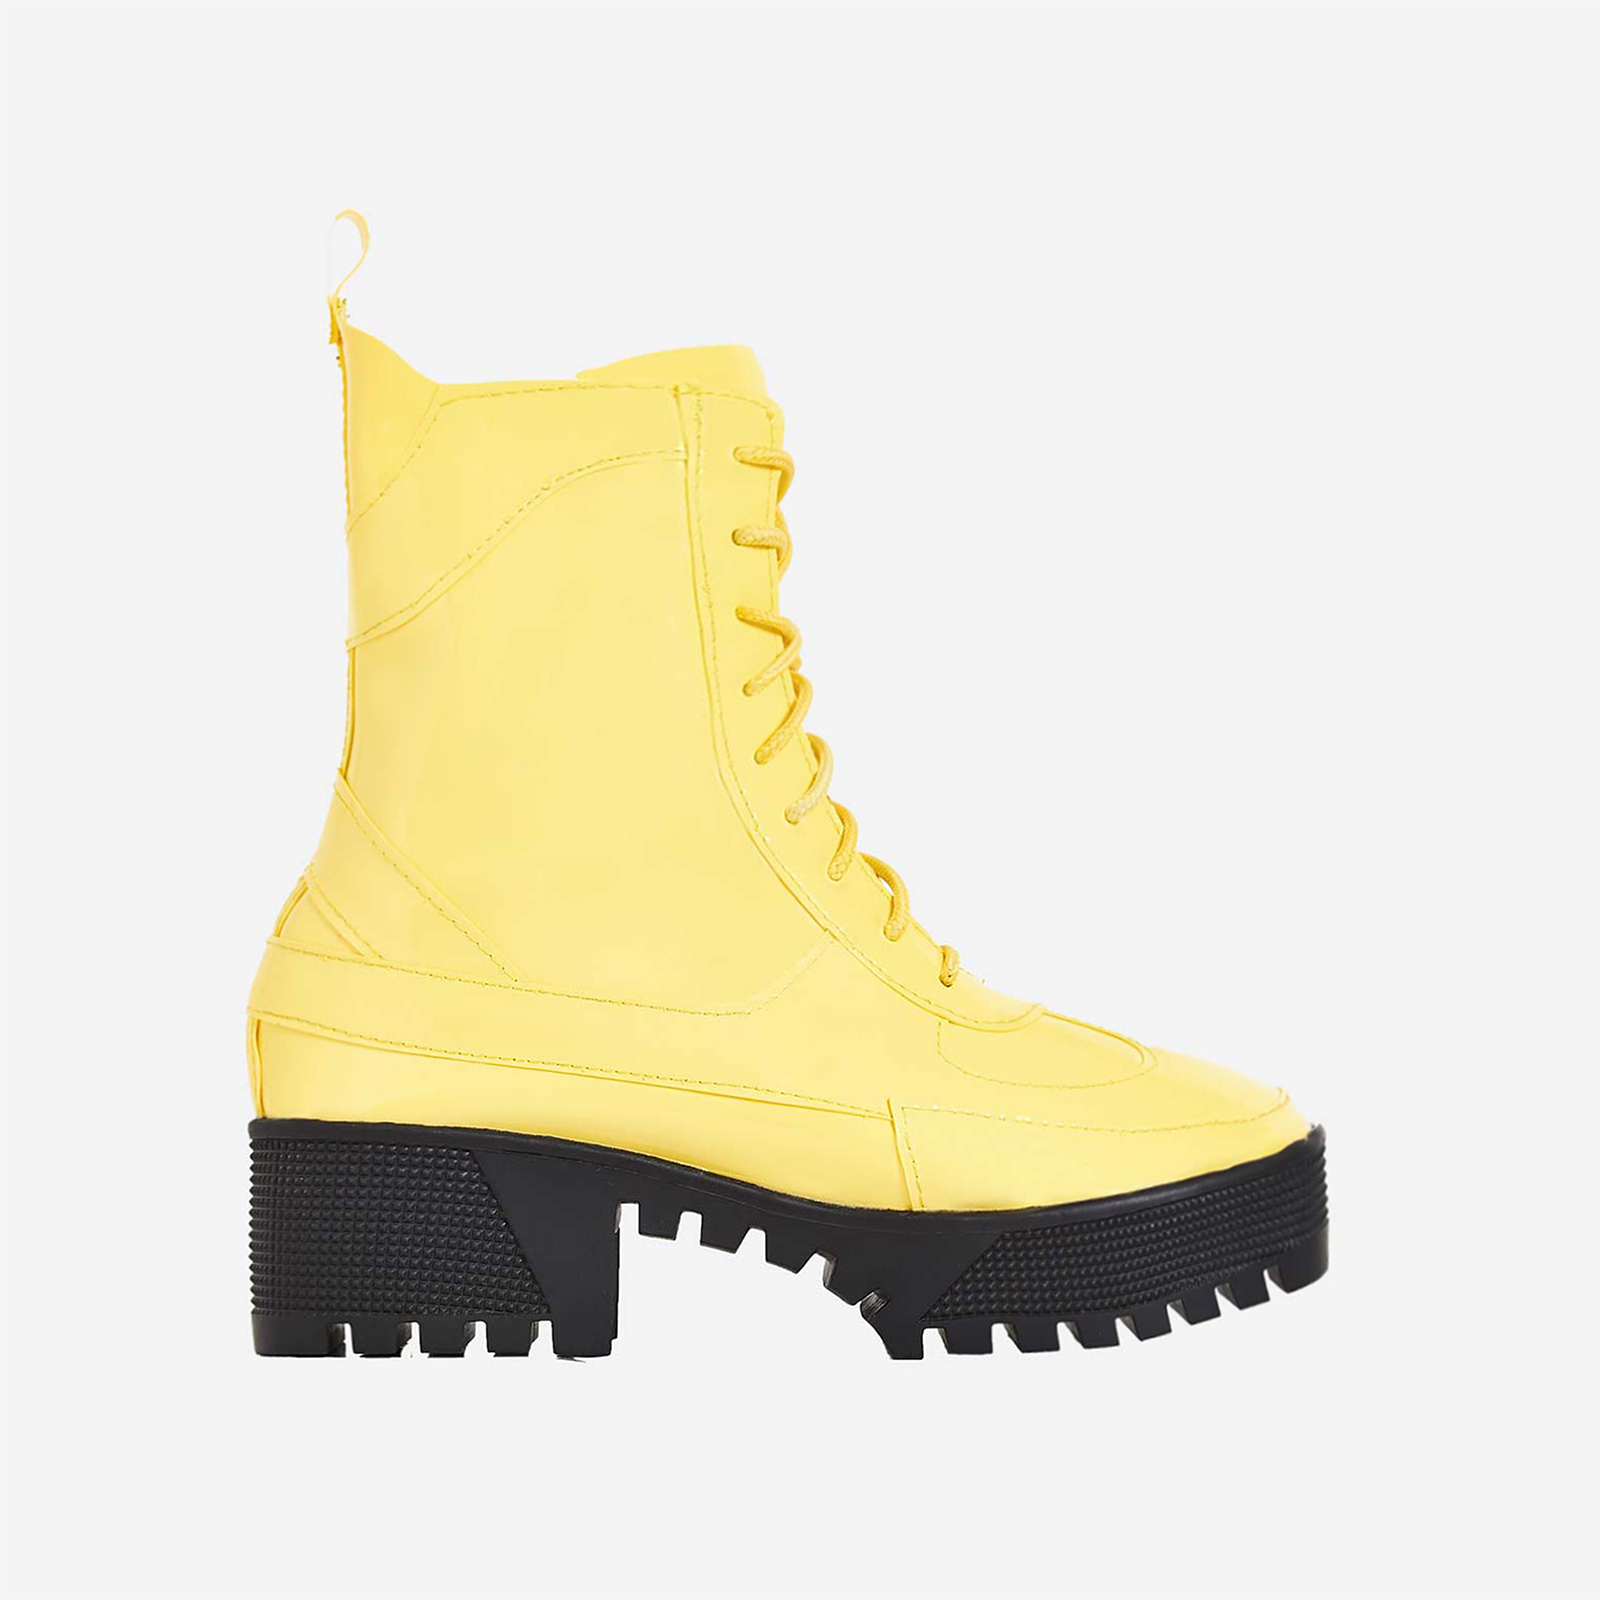 Dashing Chunky Sole Lace Up Ankle Boot In Yellow Patent